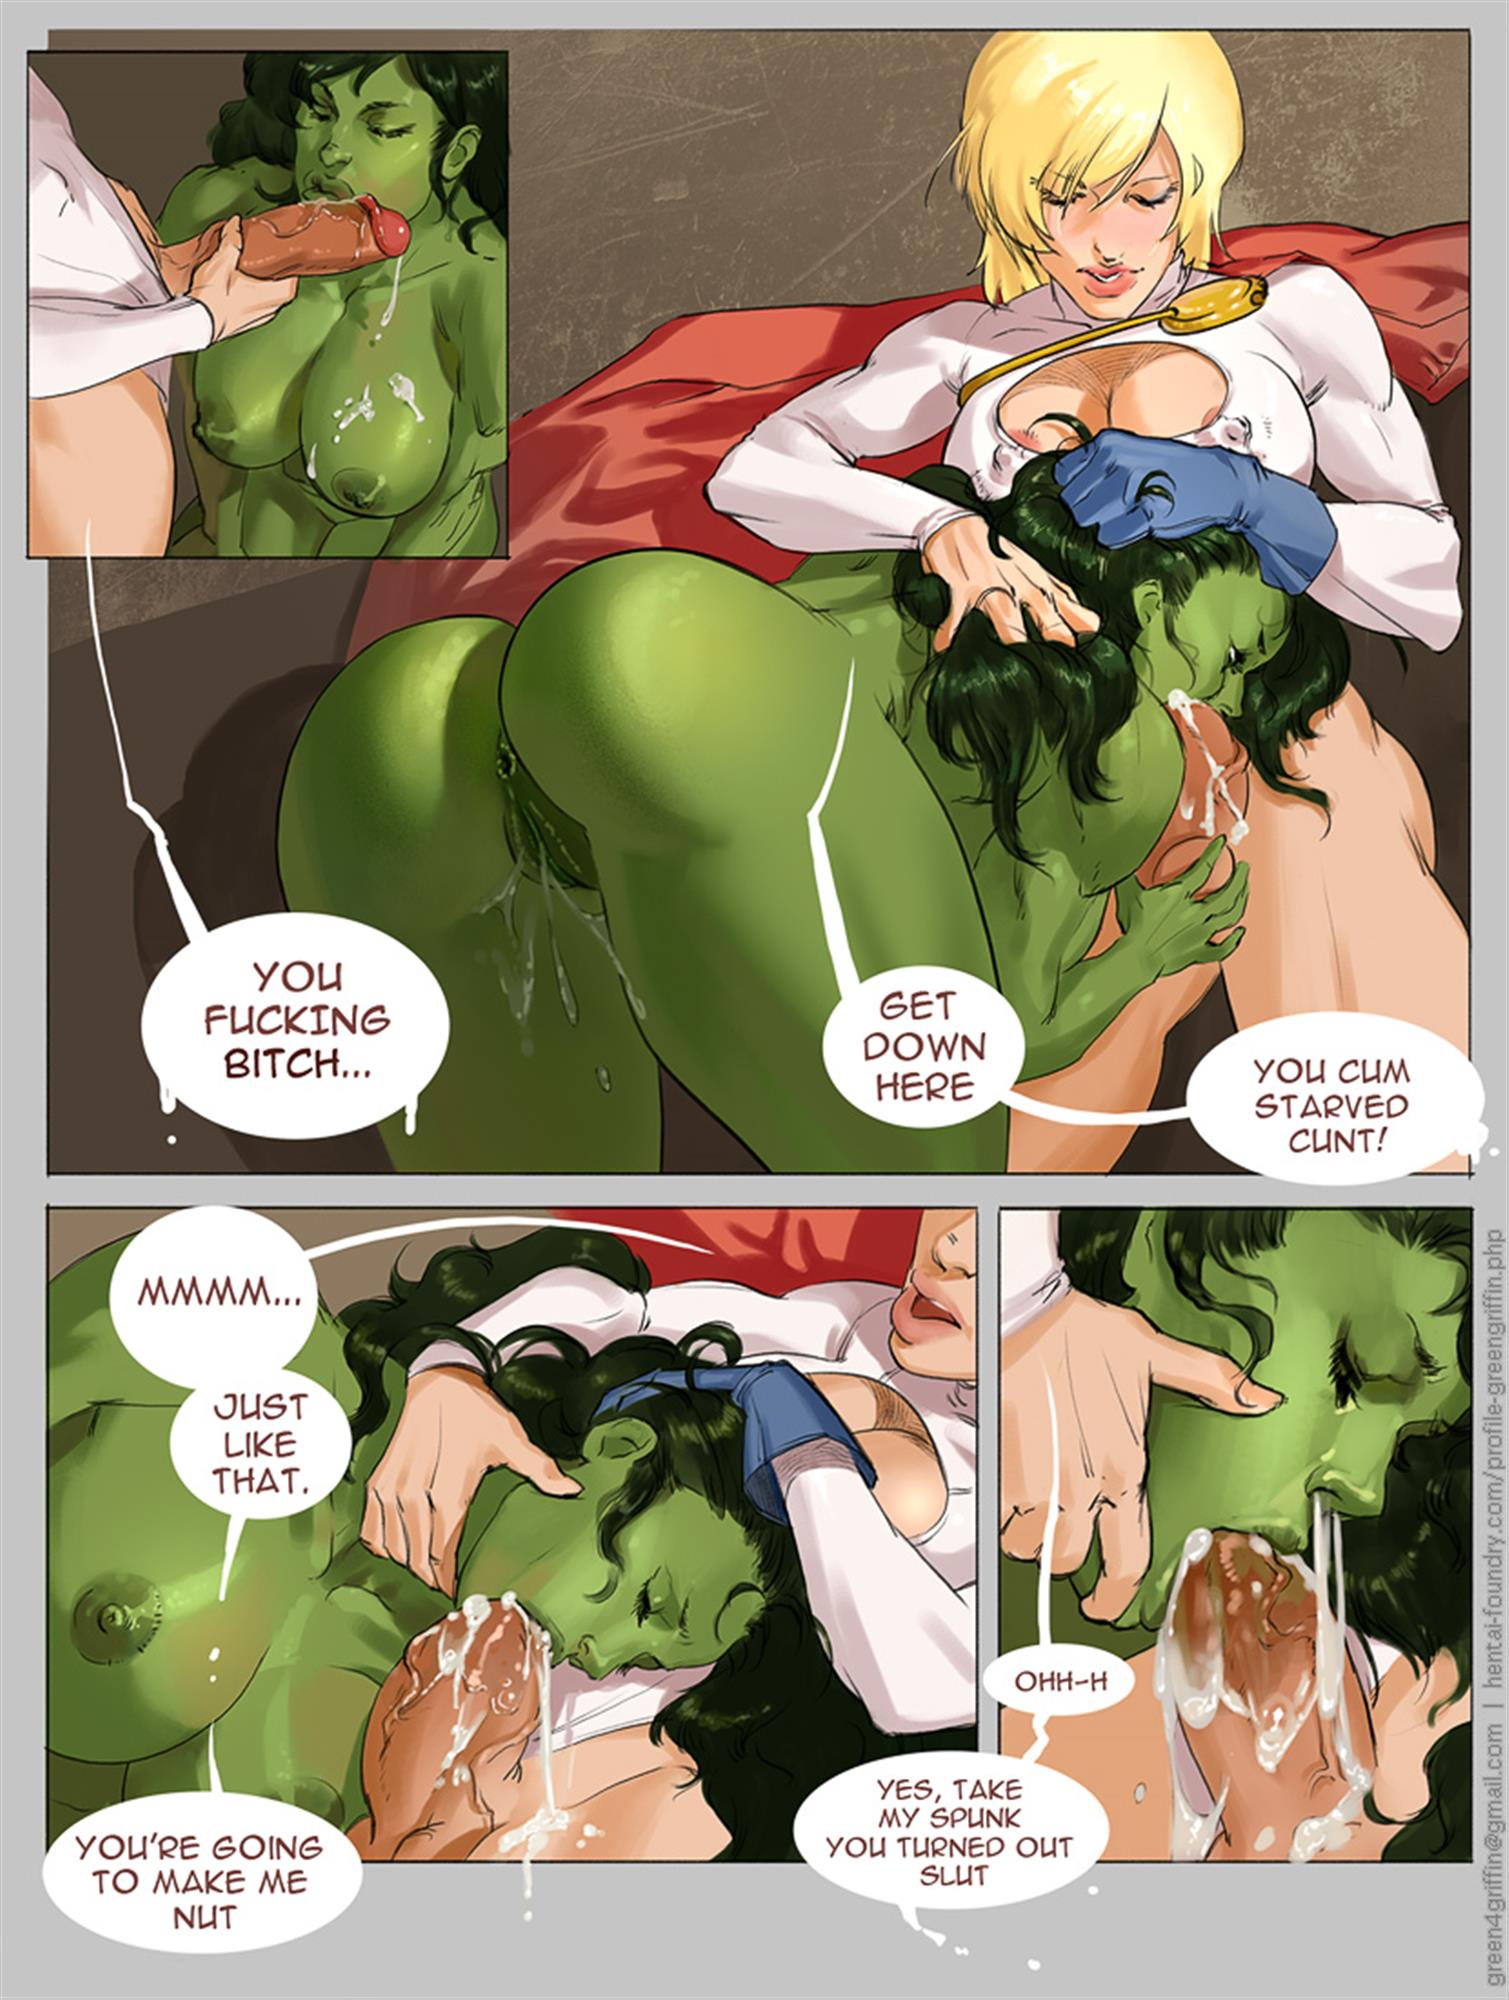 Power girl rule 34 comics commit error